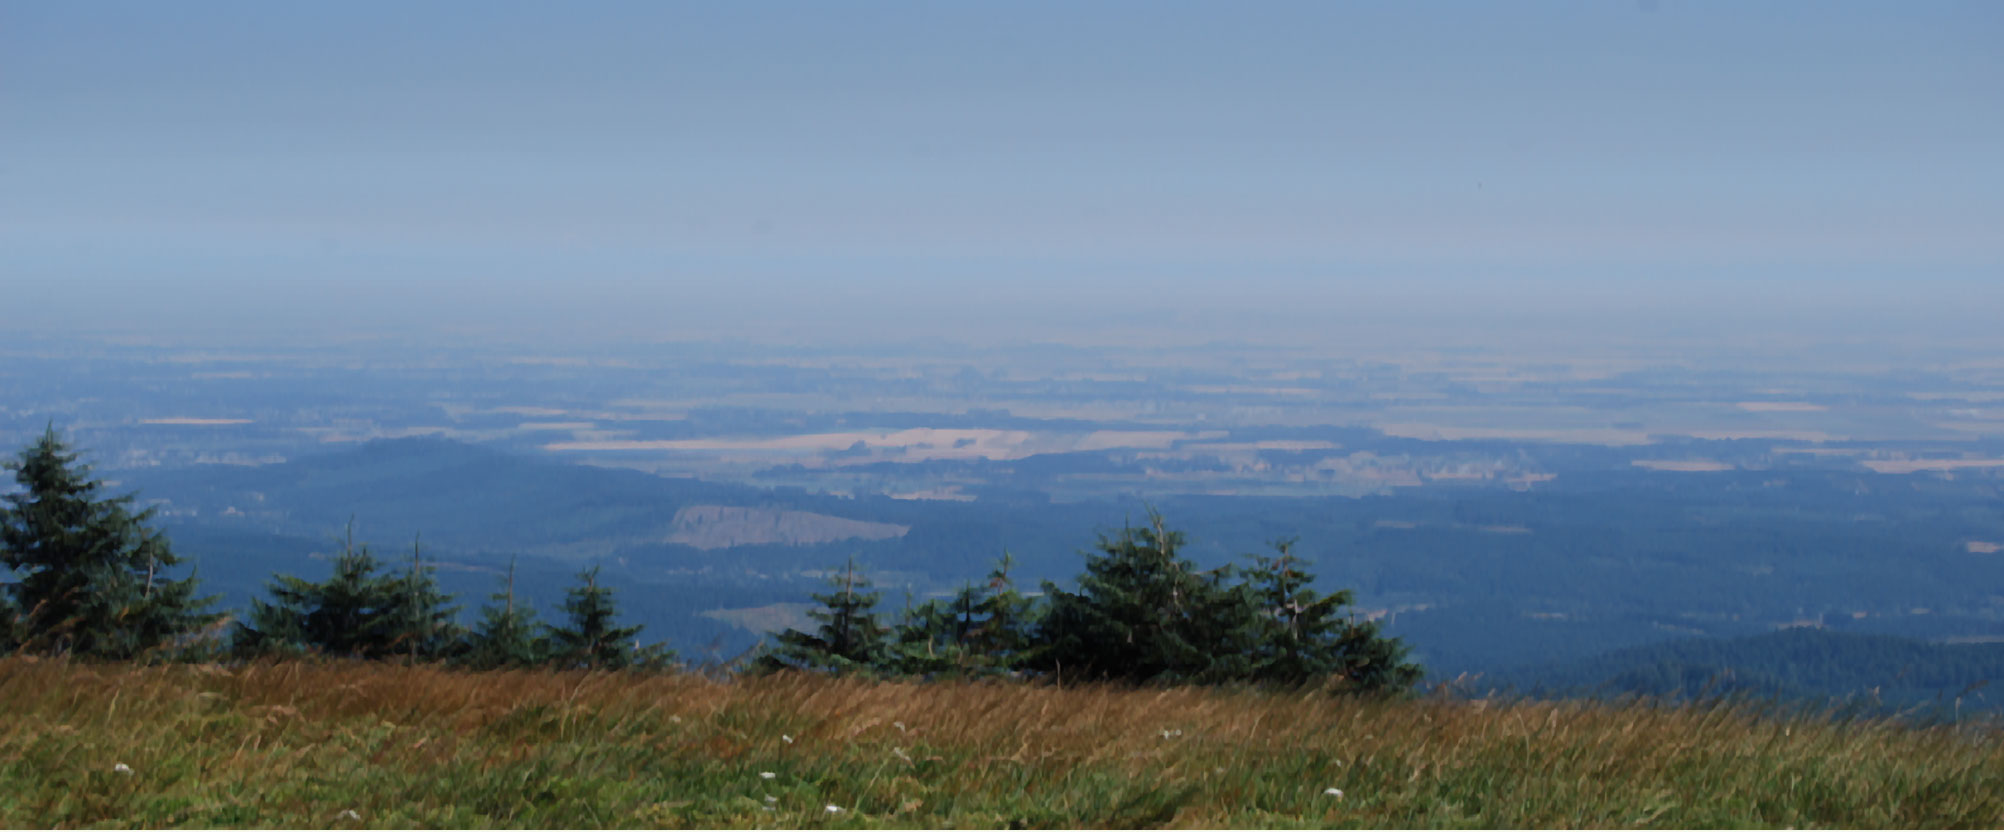 Willamette Valley From Marys Peak